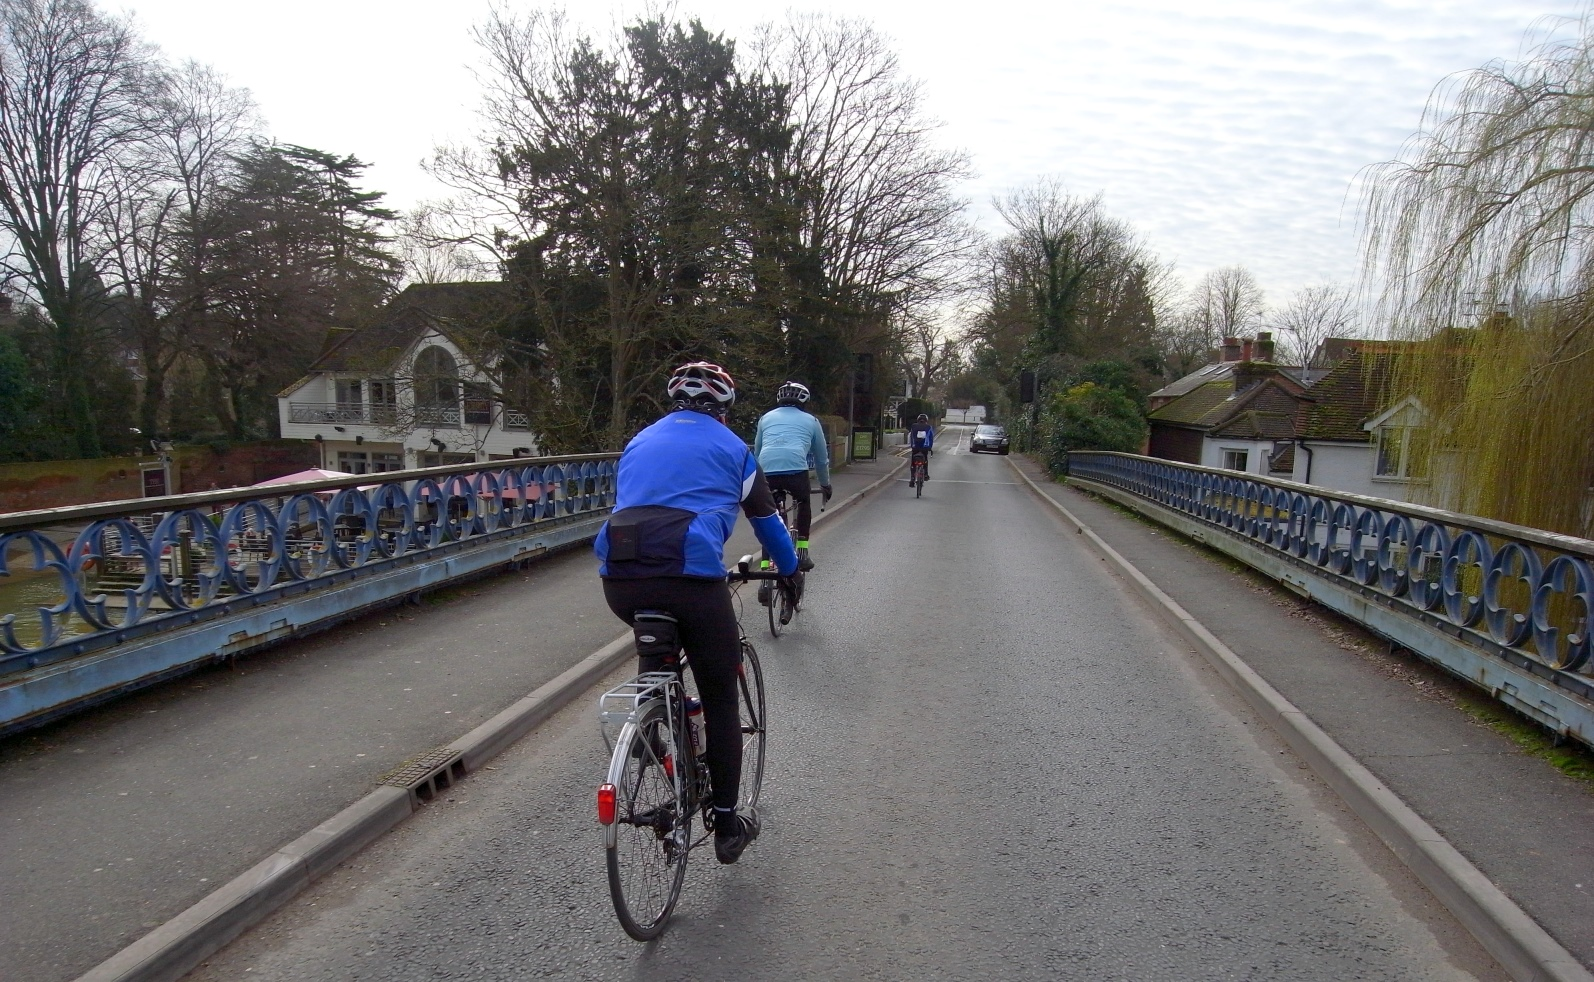 Crossing the Thames at Cookham